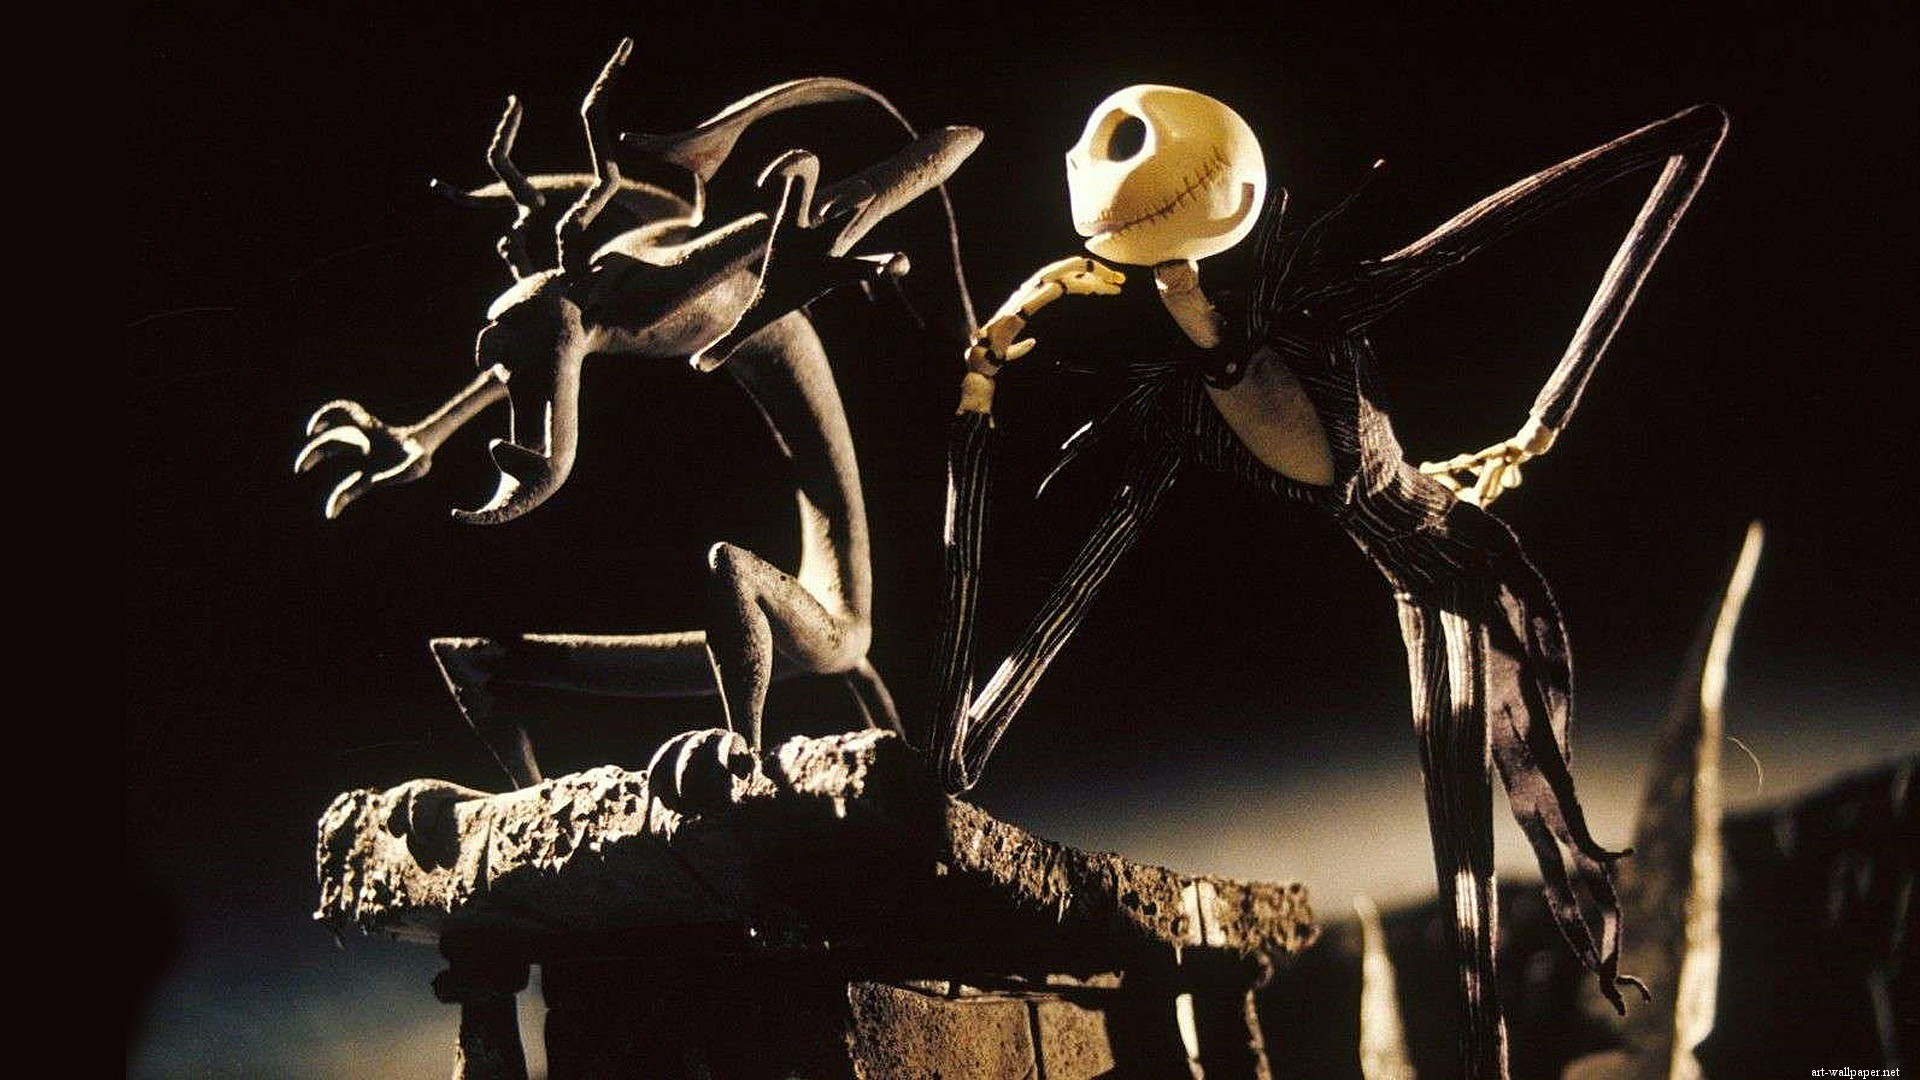 Nightmare Before Christmas Background Hd Wallpaper - Nightmare Before Christmas - HD Wallpaper